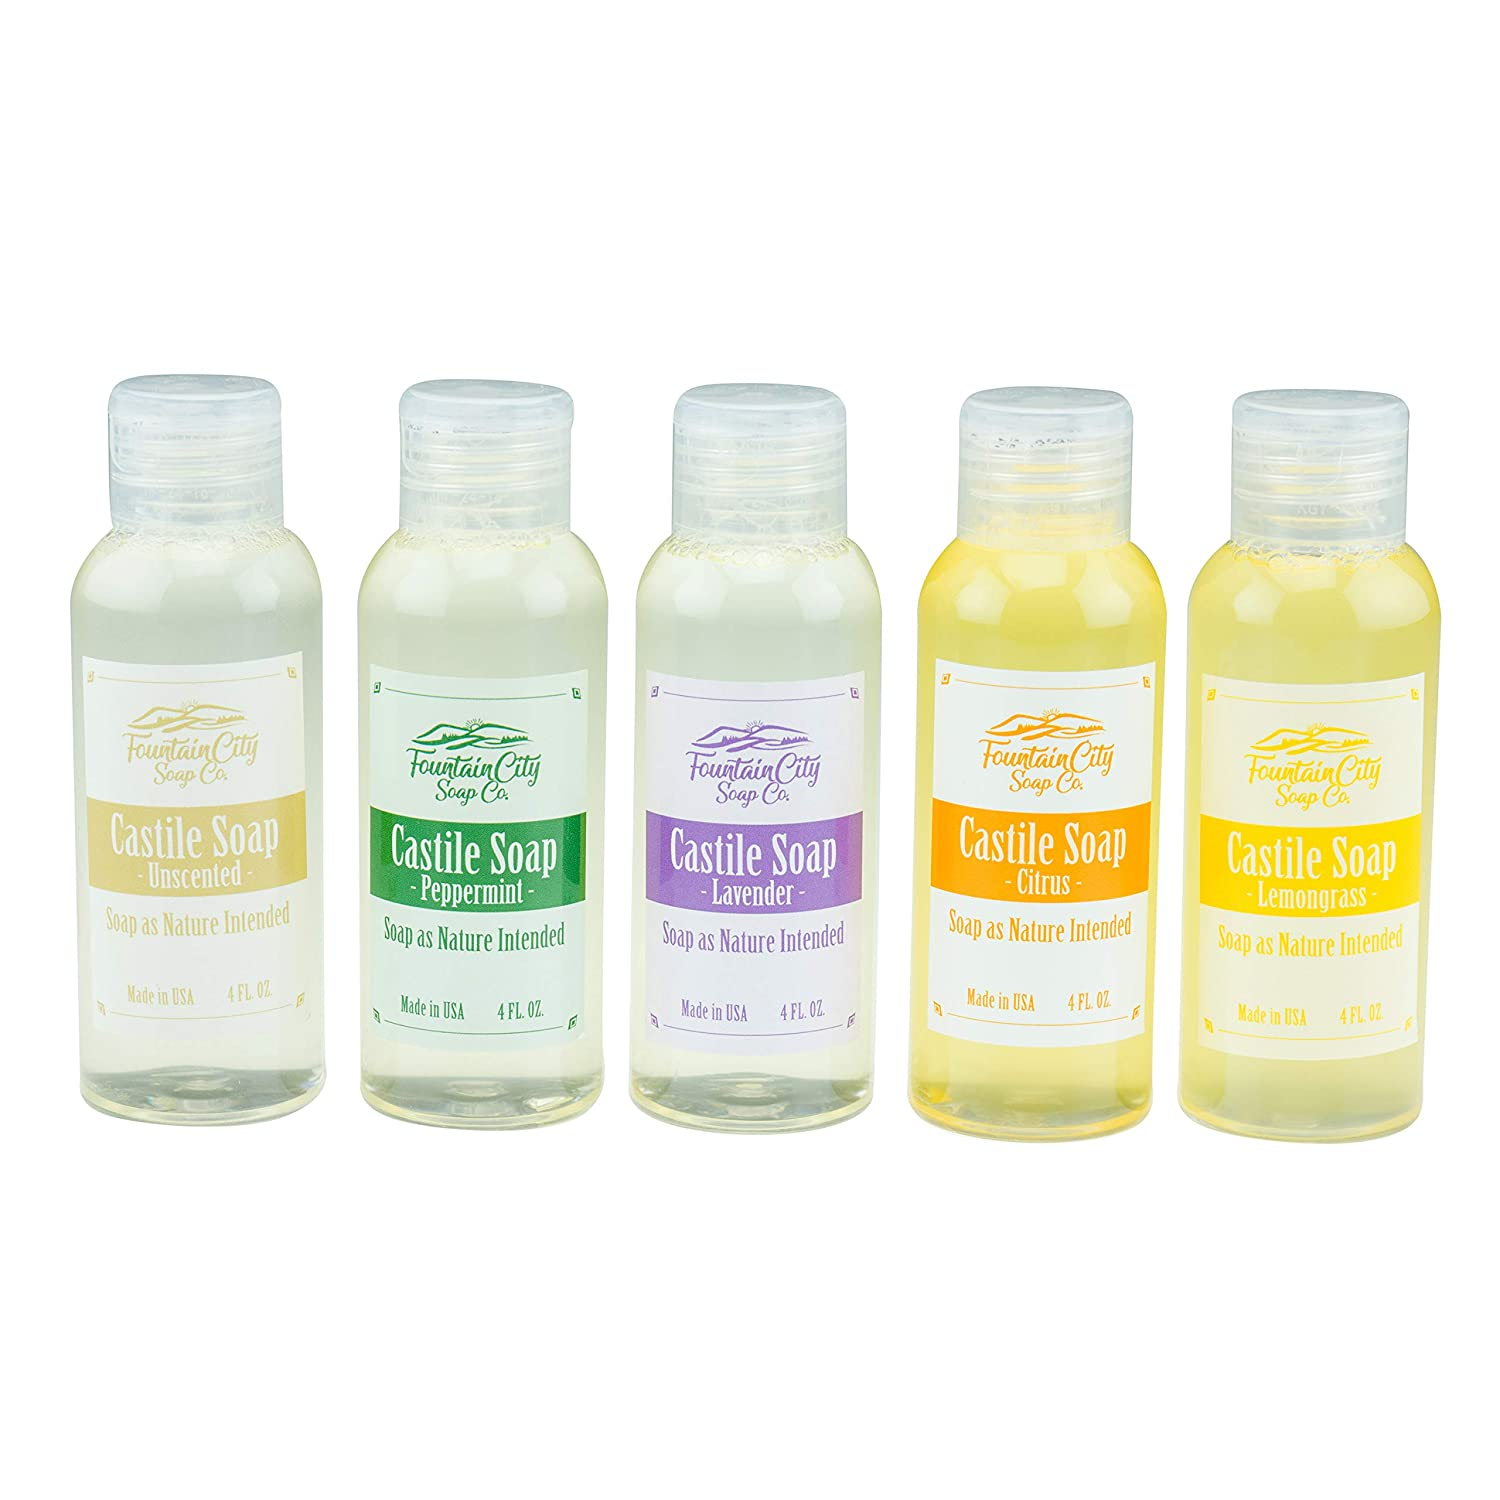 Pure Castile Liquid Soap, Variety Pack, 5 Unique Scents, 4 Ounces Each | Made with Organic Oils | Face, Body, Hair, Laundry, Pets & Dishes | Concentrated, Vegan, Non-GMO